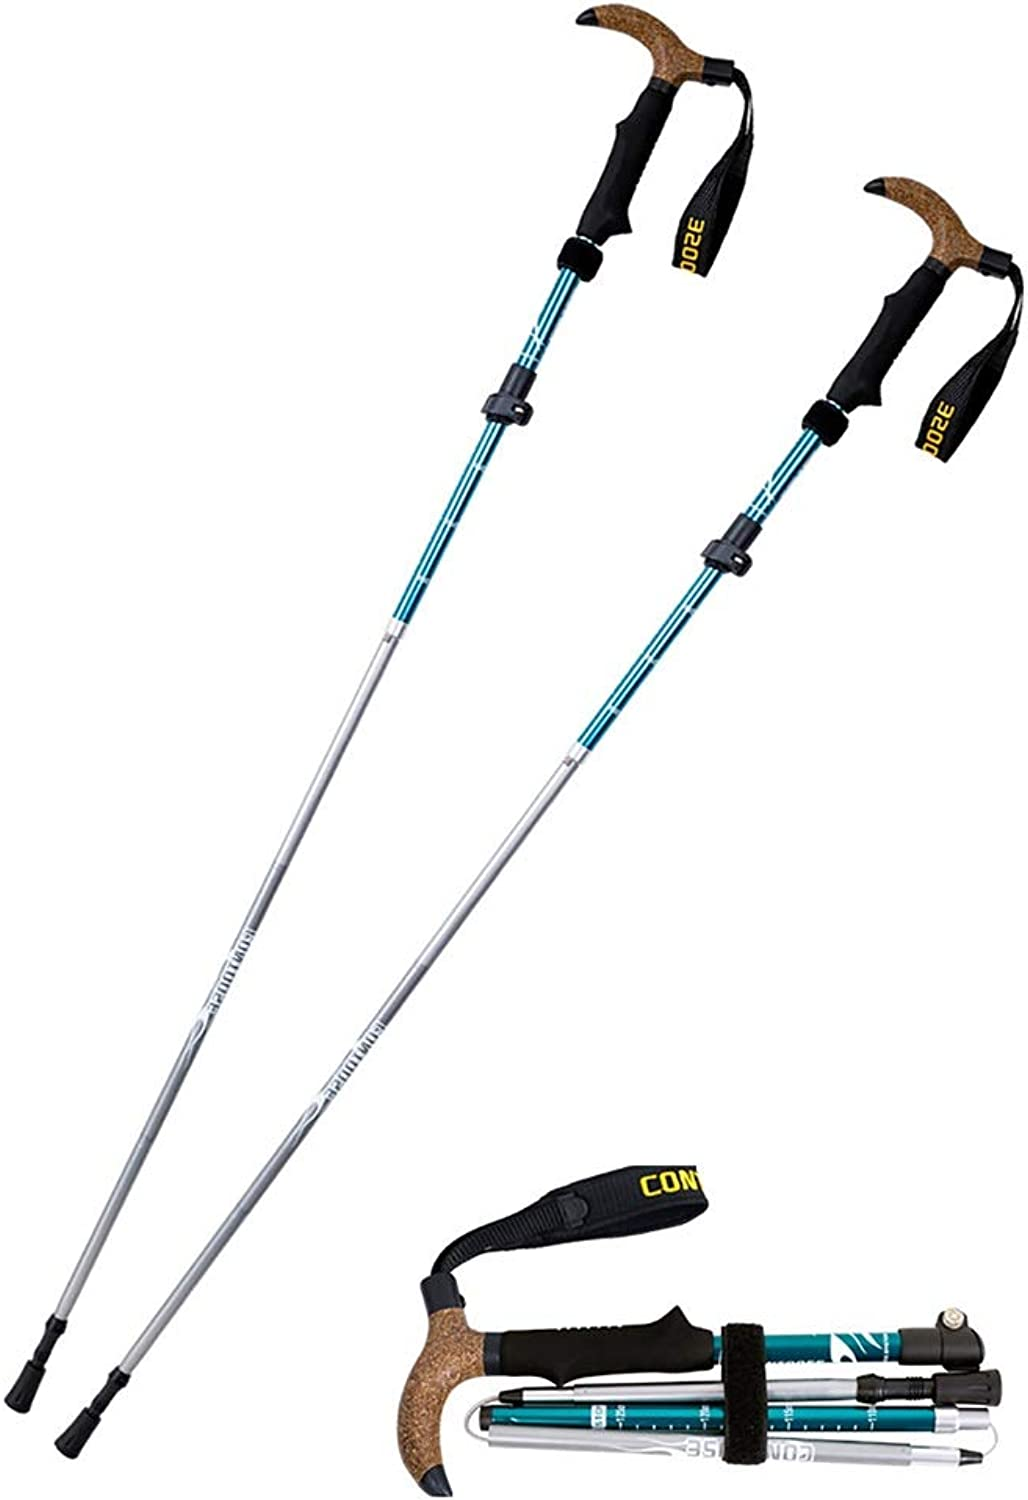 ROCKFEATHER Trekking Poles Collapsible Lightweight WearResistant CorrosionResistant Carbon Tip Quick Lock Comfortable with ShockAbsorbent,THandle,2PCS,Accessories and Carry Bags